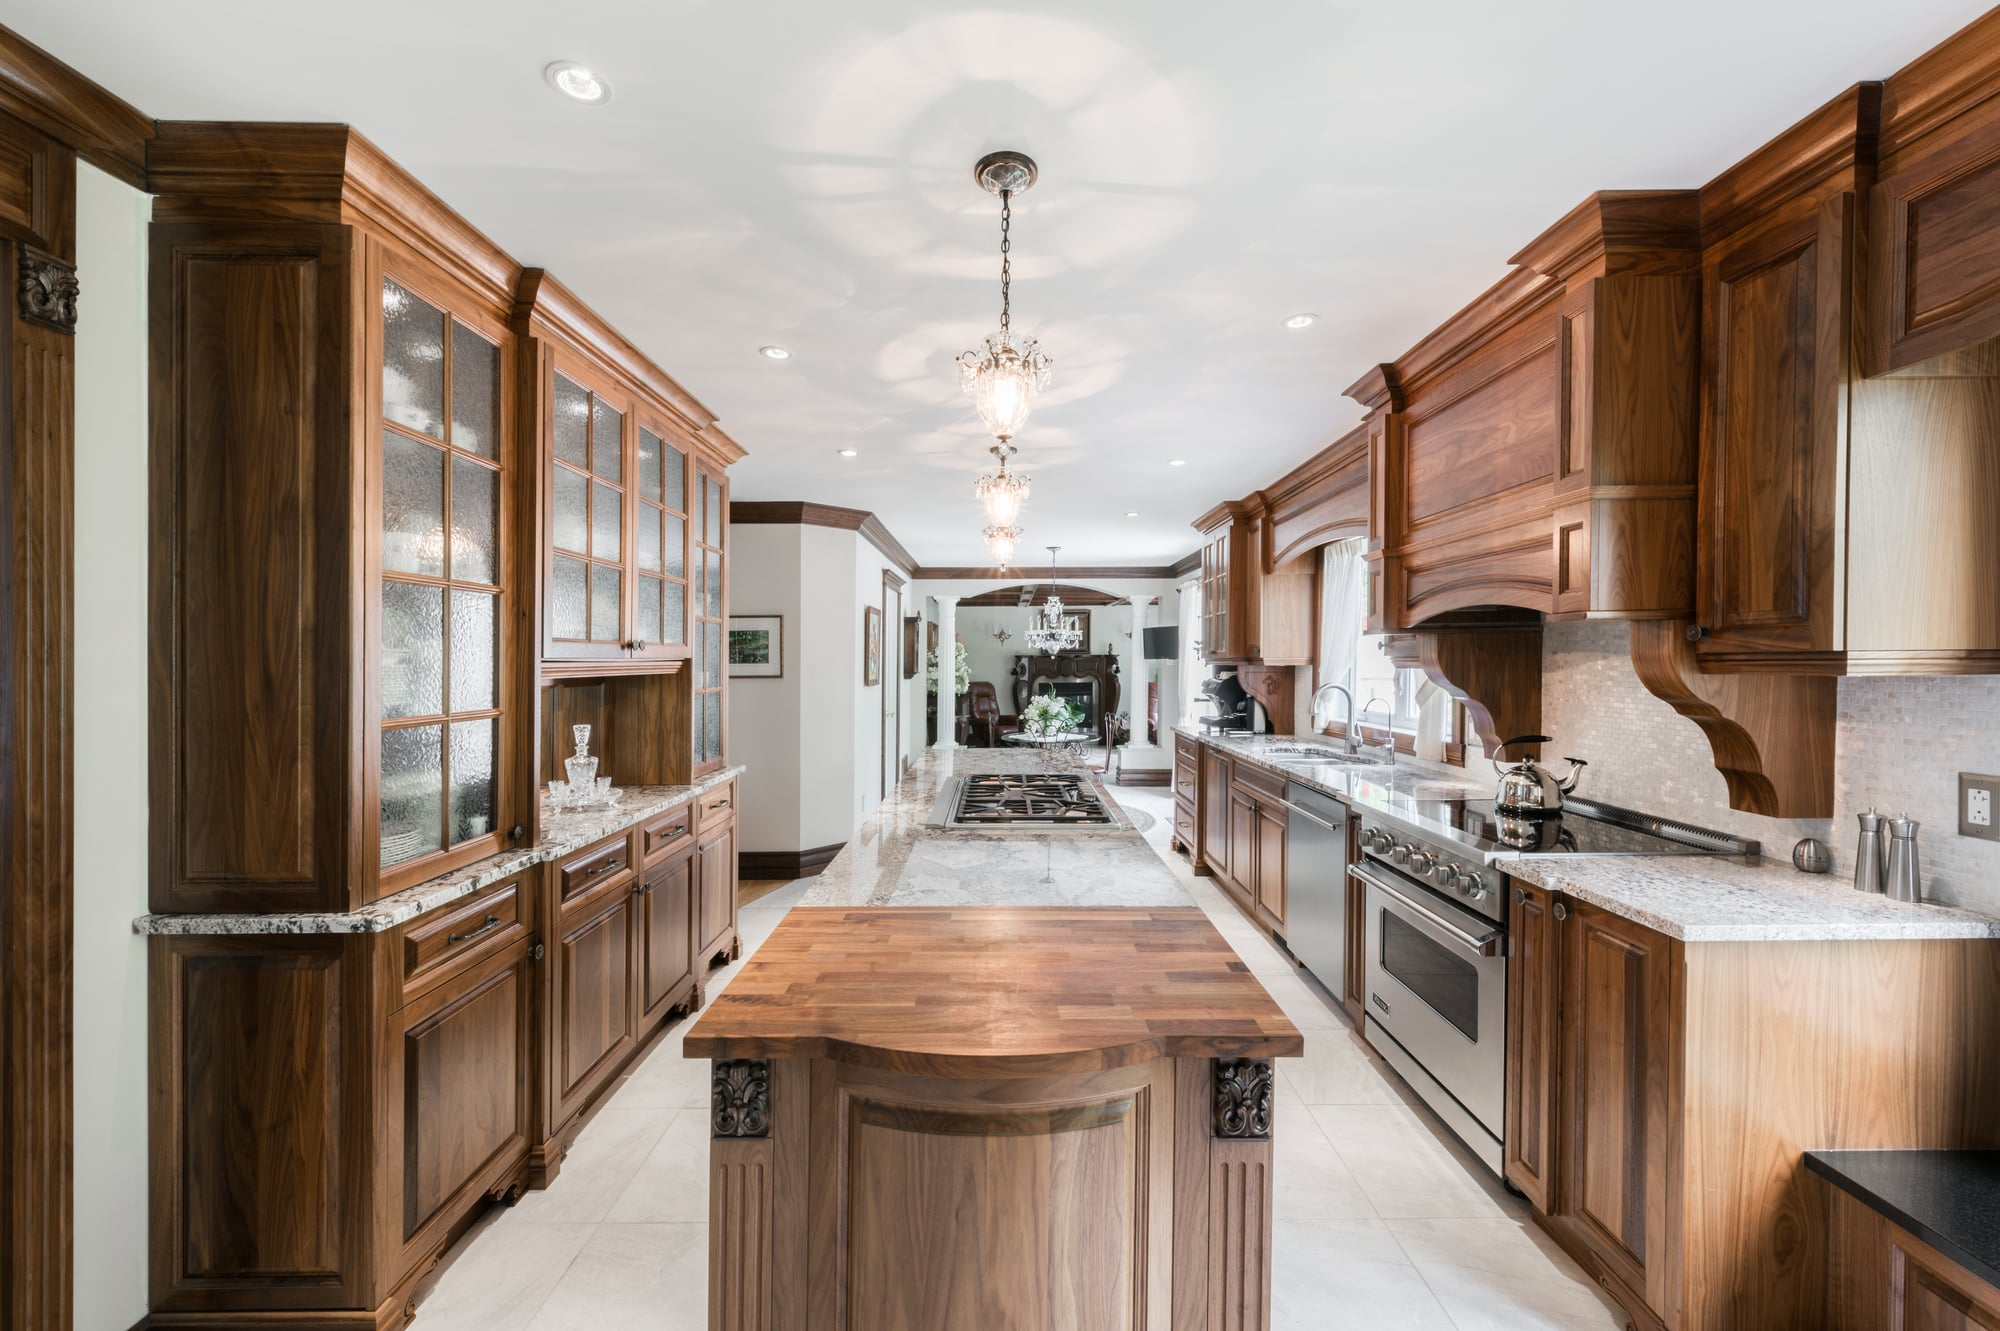 wooden classic kitchen design with granit countertops